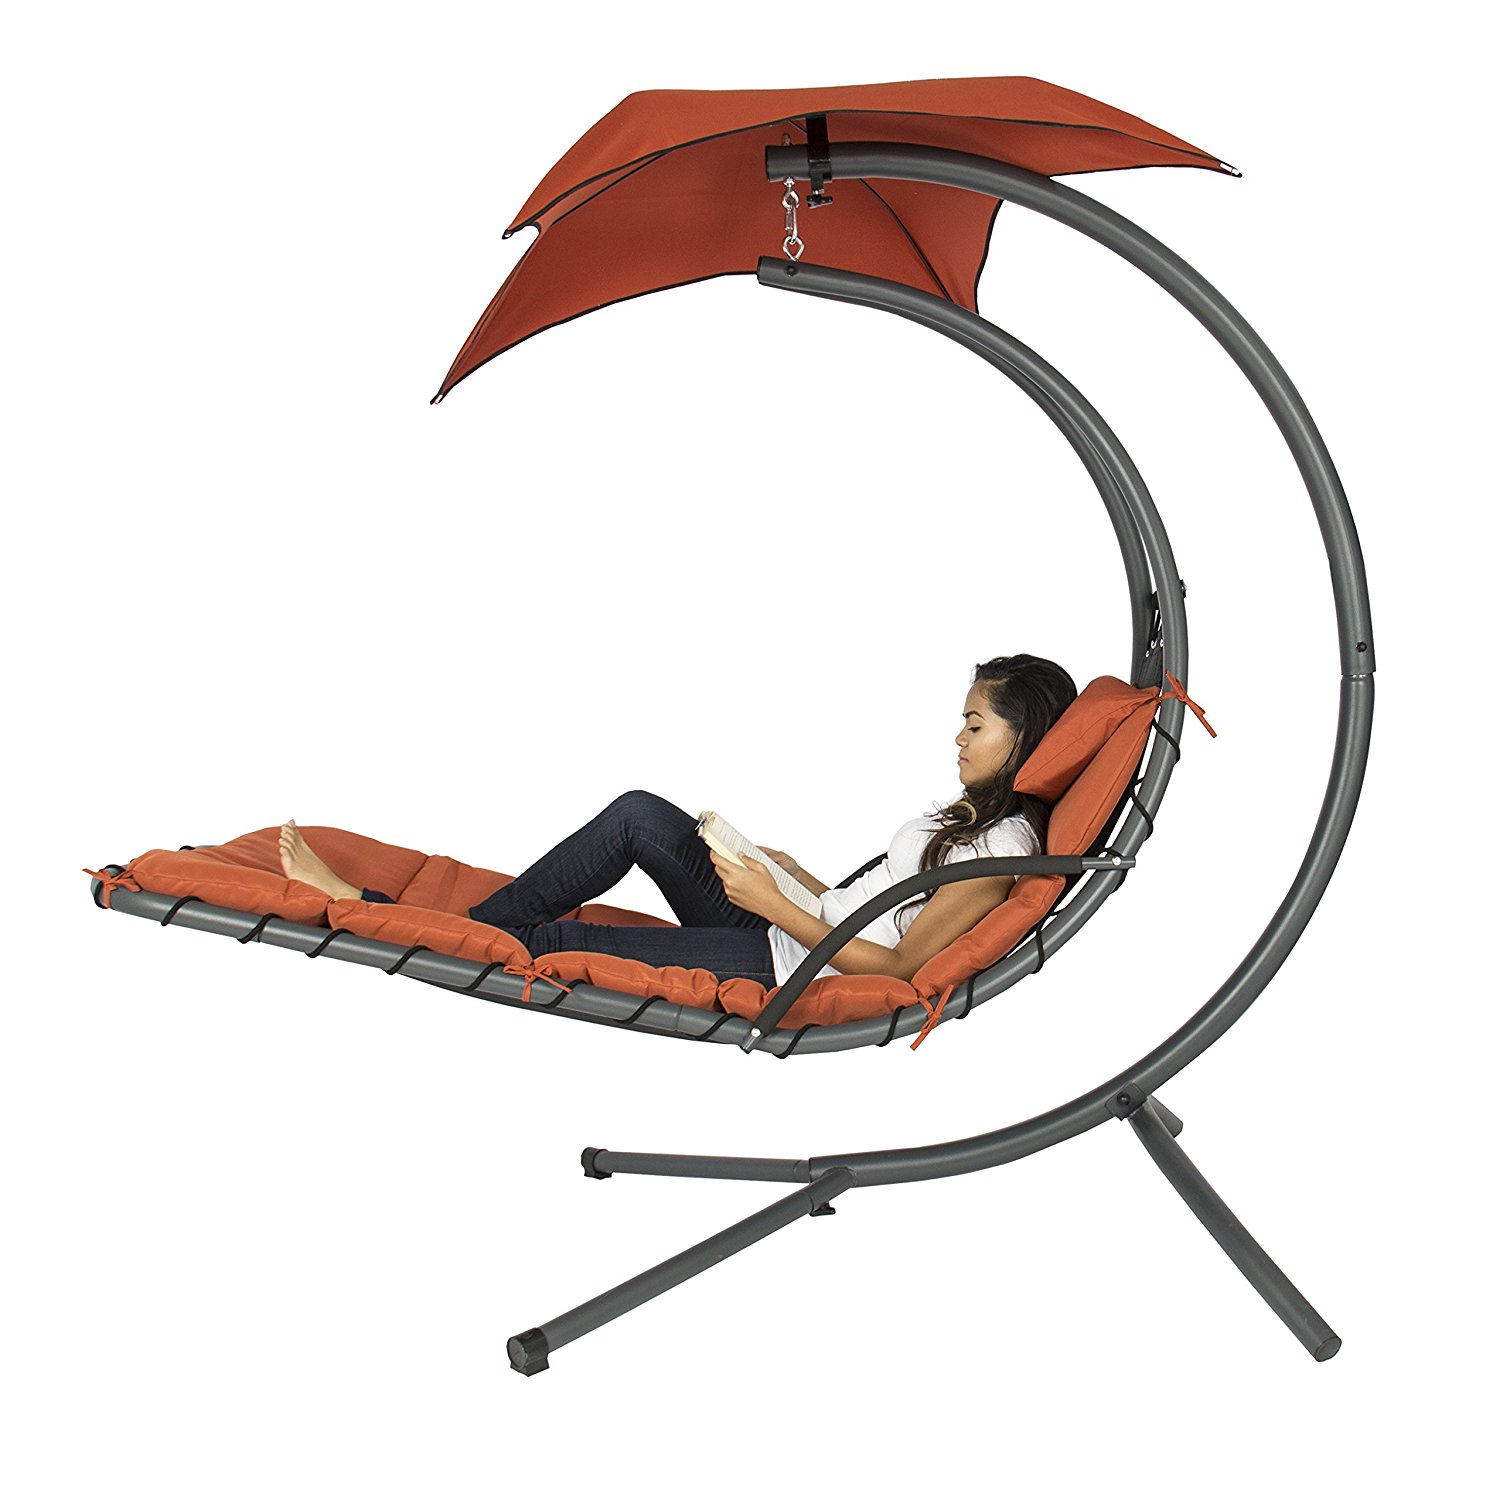 Hanging Patio Pool Chair